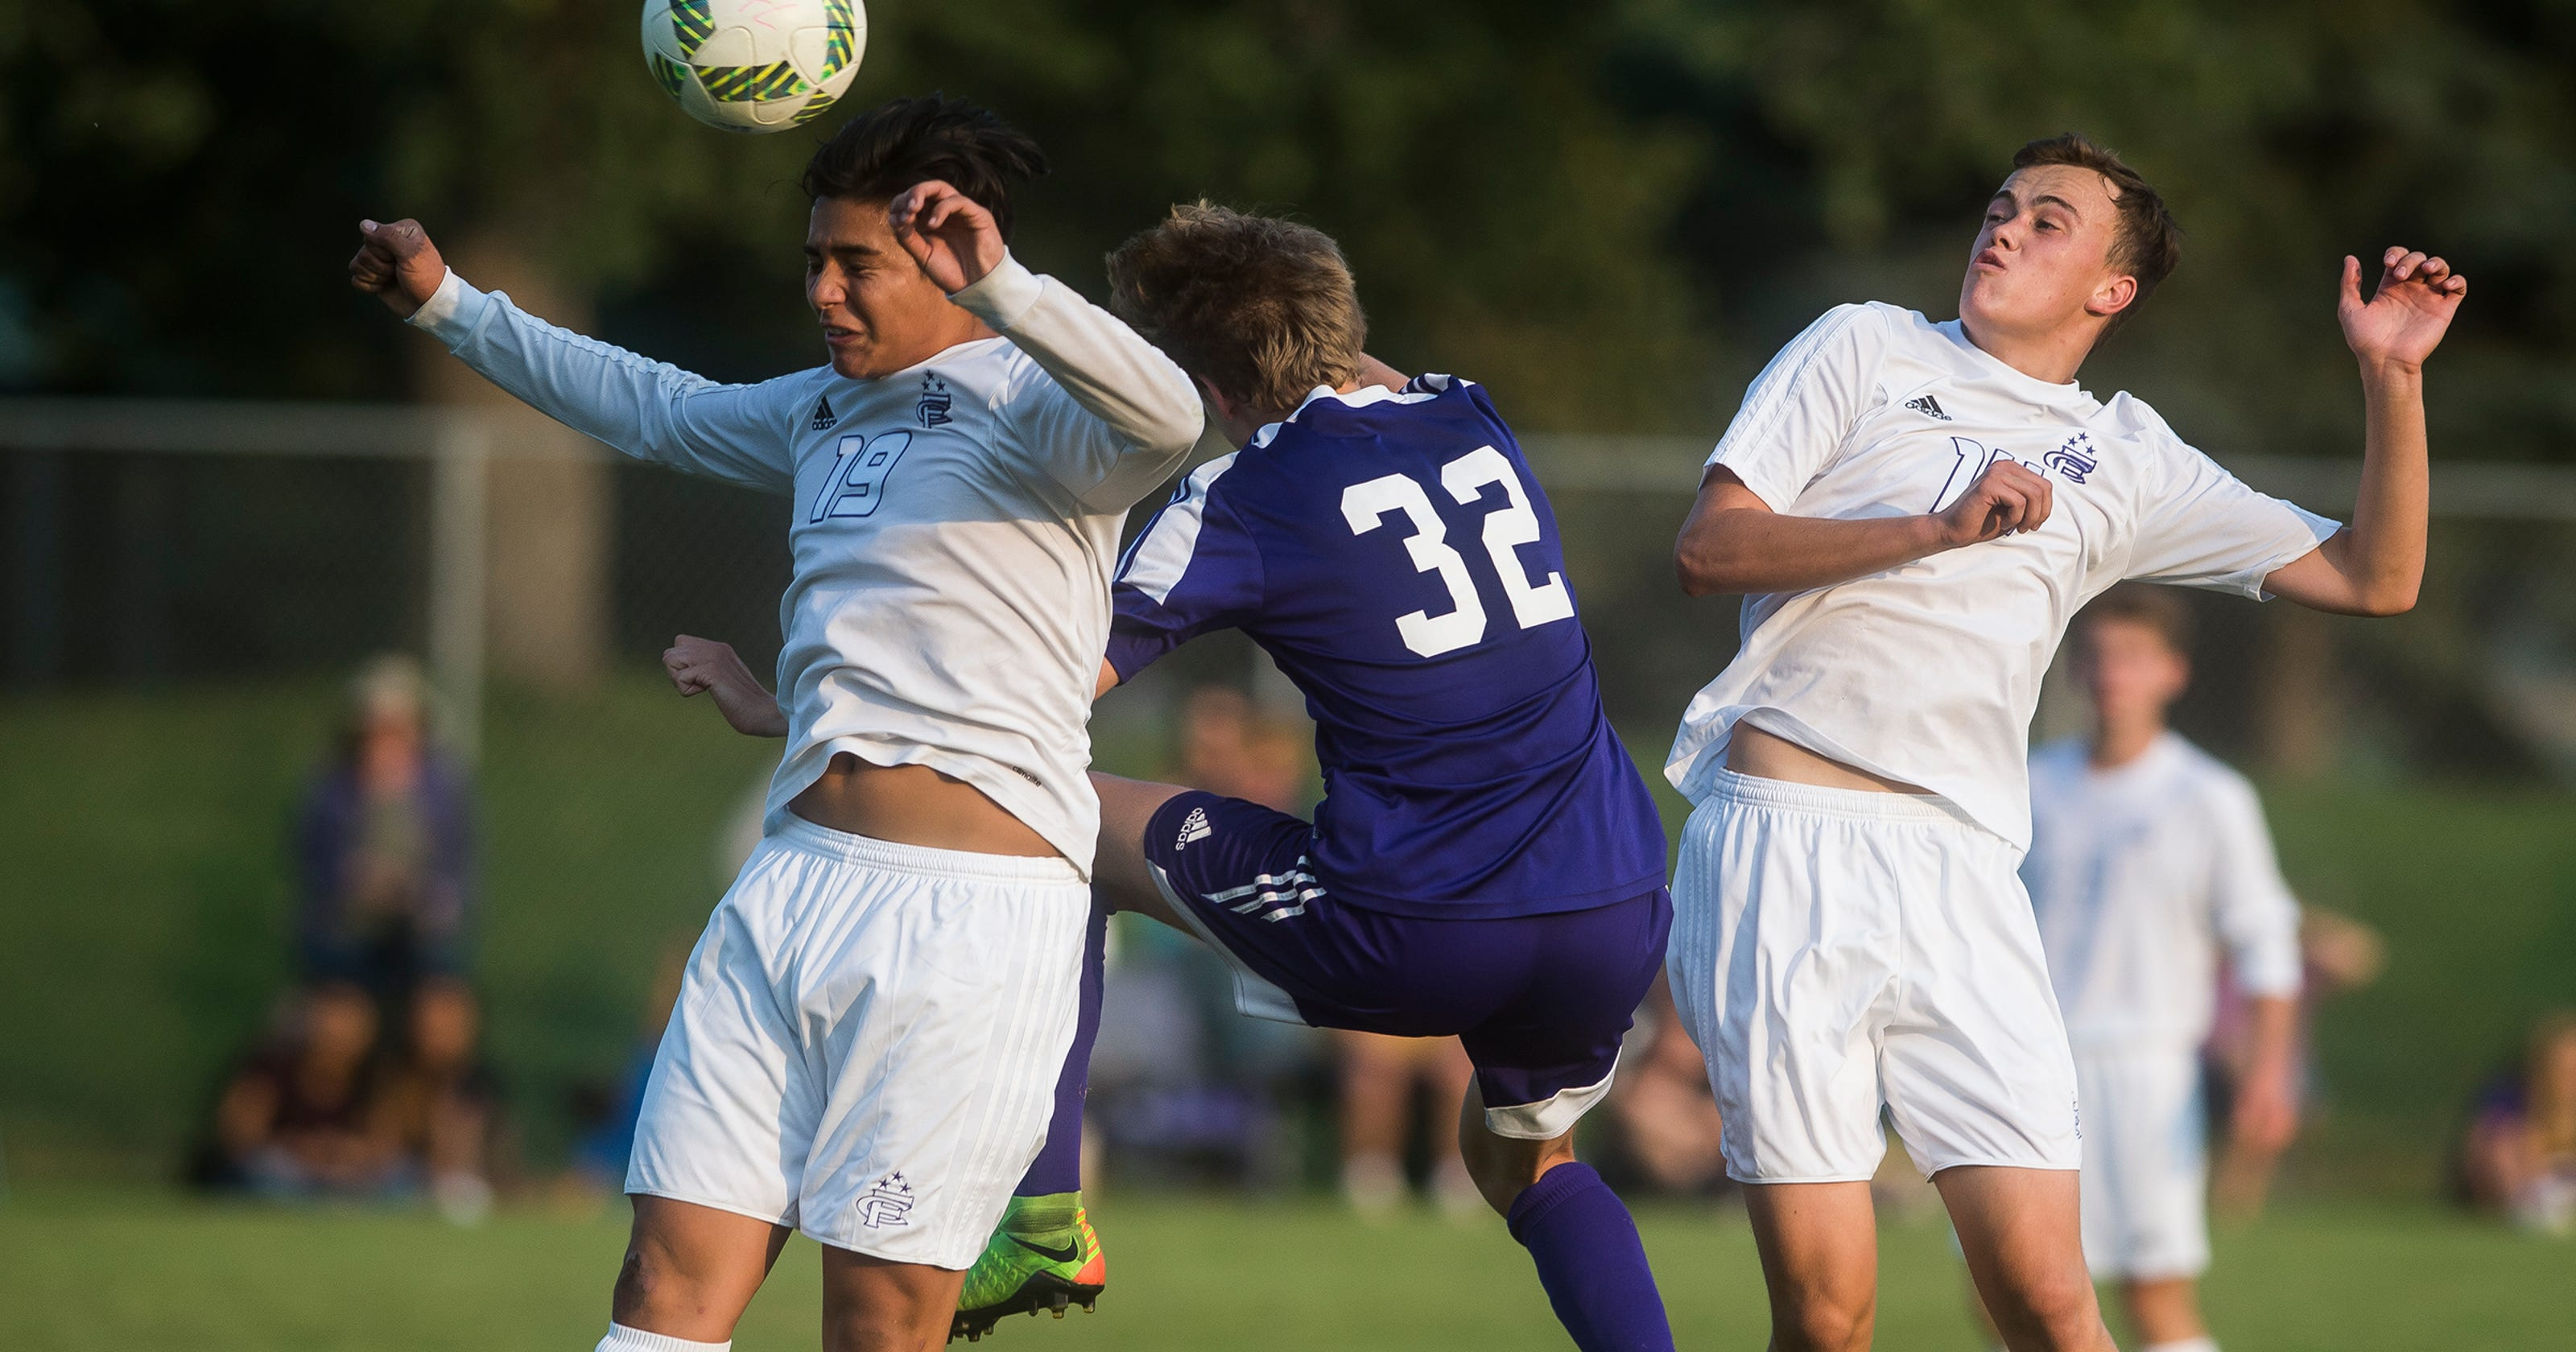 5 Local Boys Soccer Teams Make Playoffs Four Host First Round Games